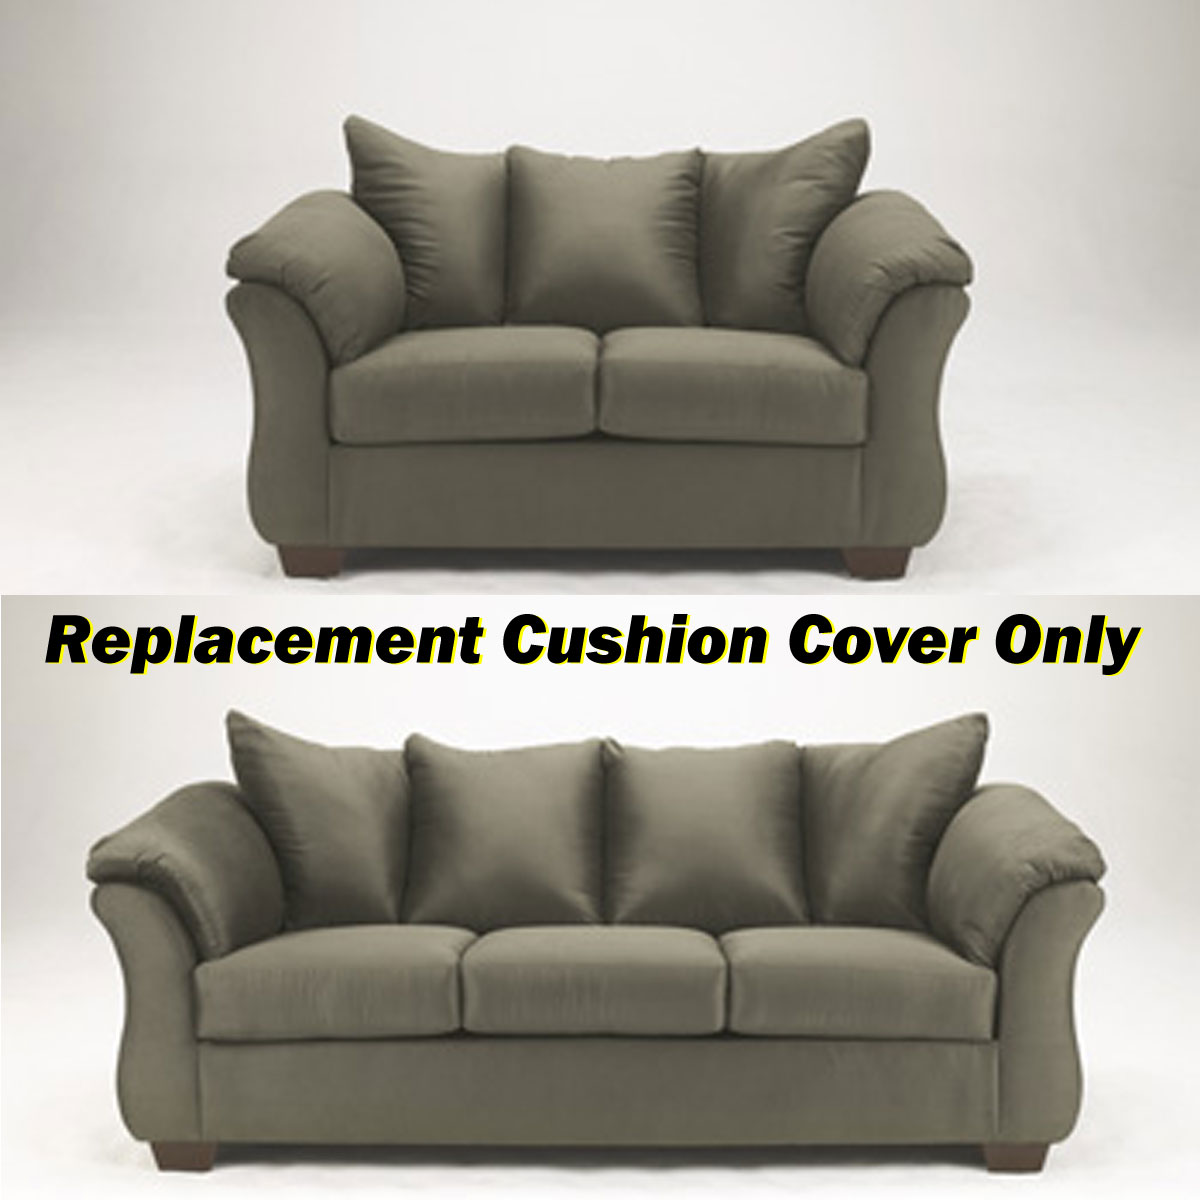 ashley darcy replacement cushion cover only 7500338 or 7500335 sage. Black Bedroom Furniture Sets. Home Design Ideas